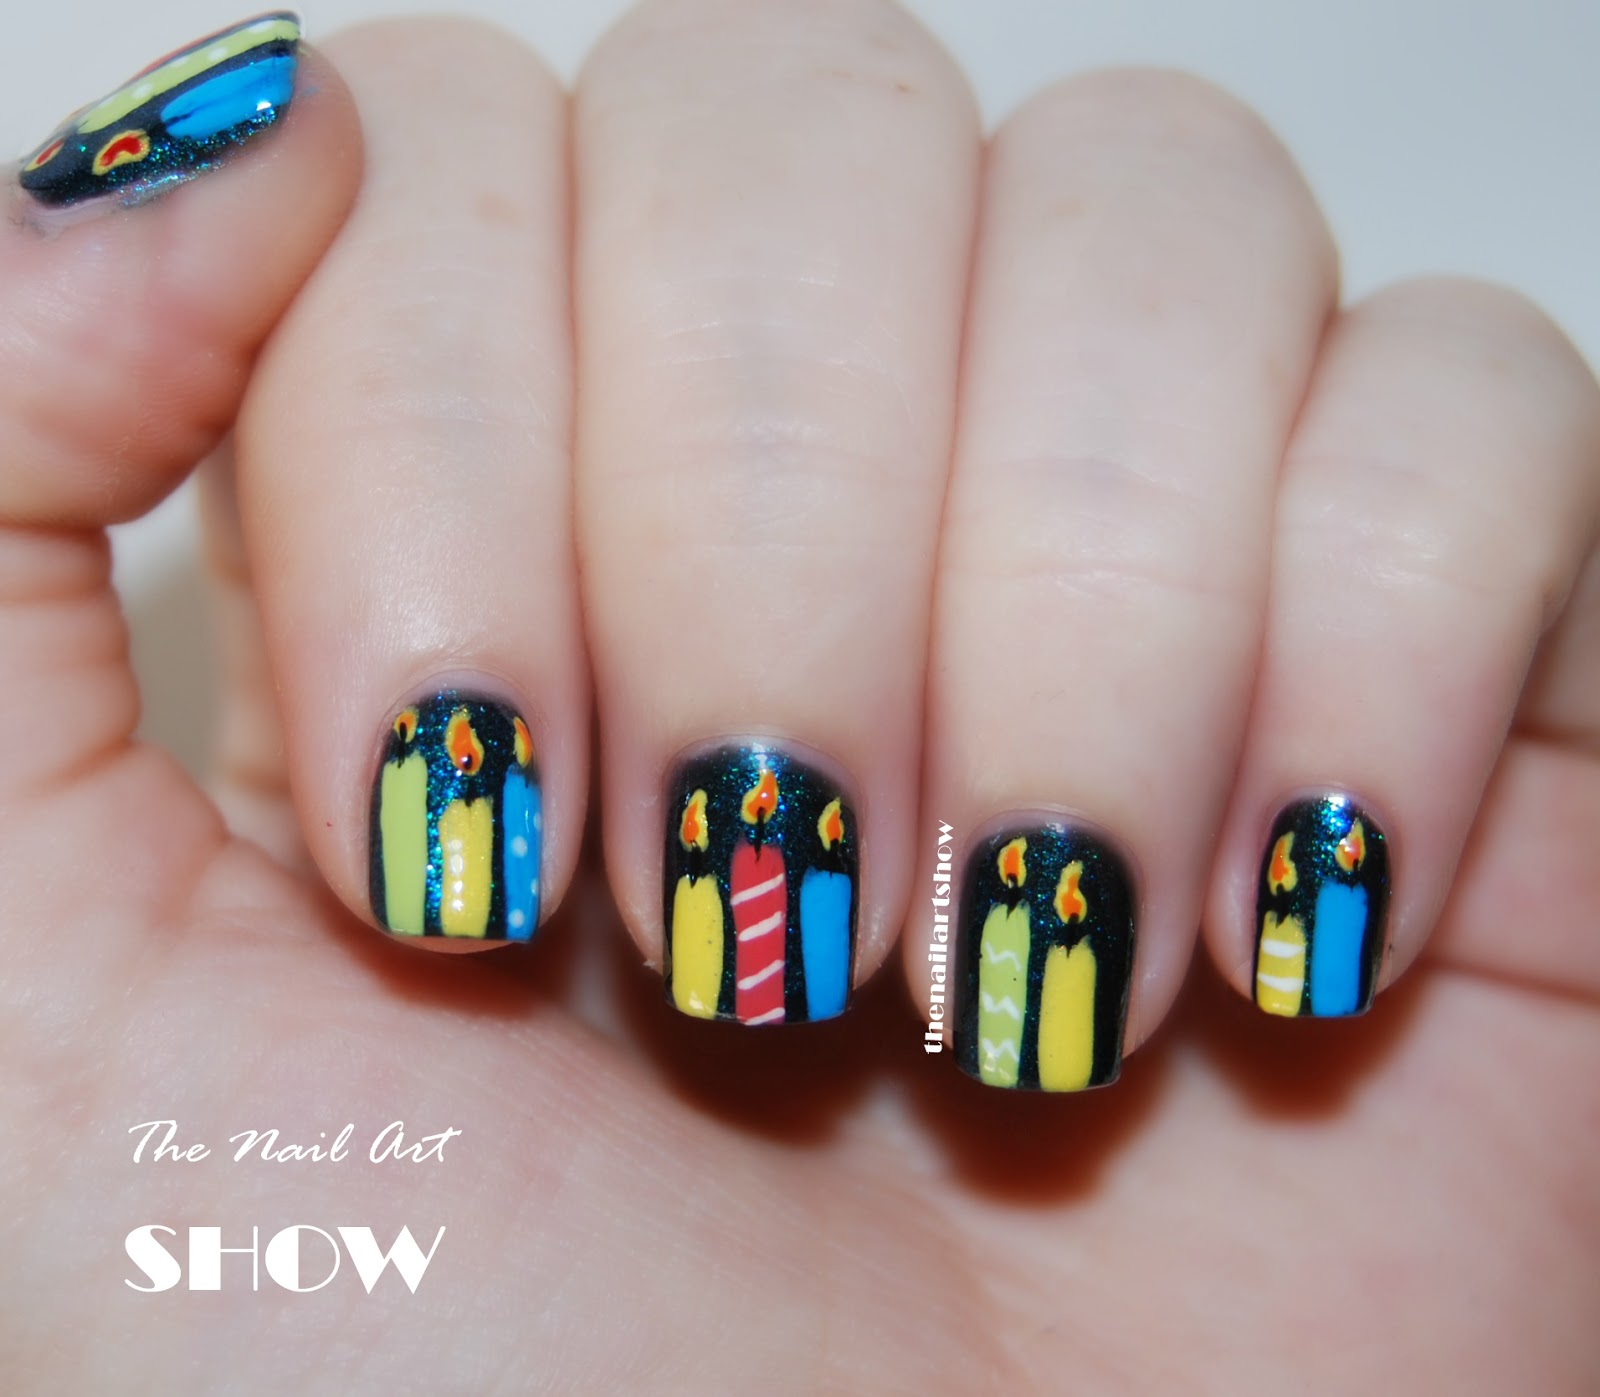 Happy Birthday To Me! | The Nail Art Show